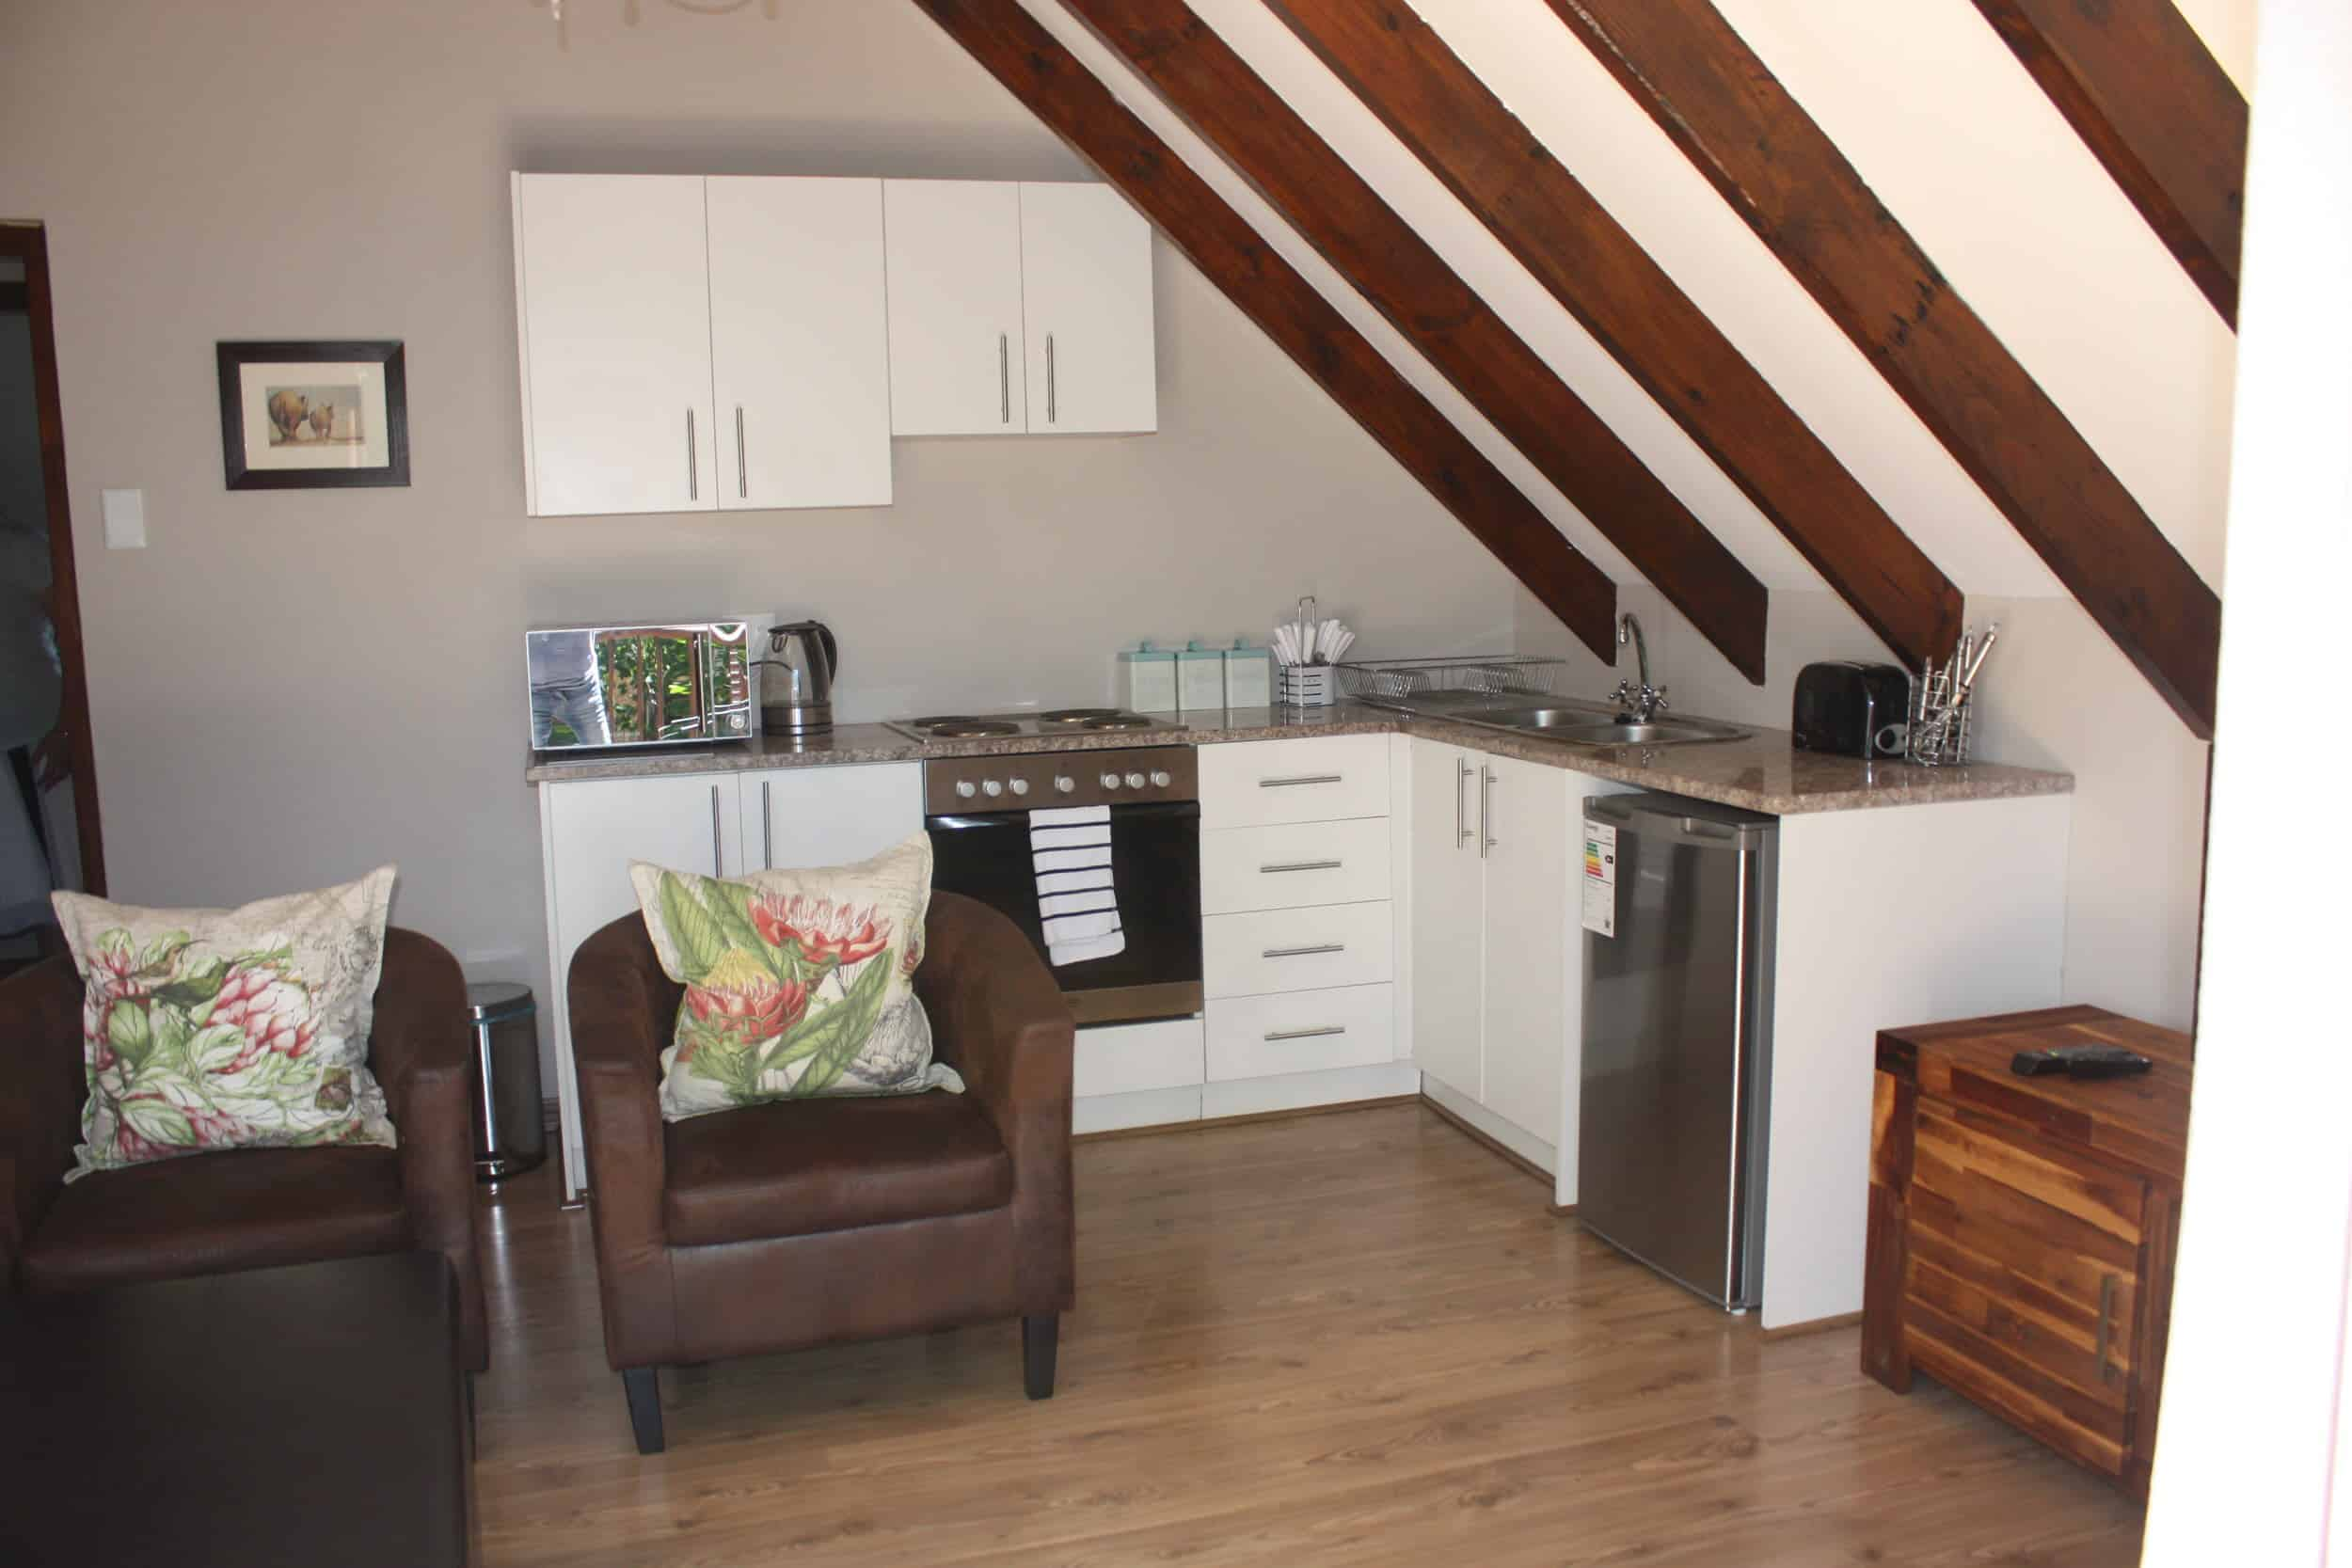 1 bedroom self catering kitchen